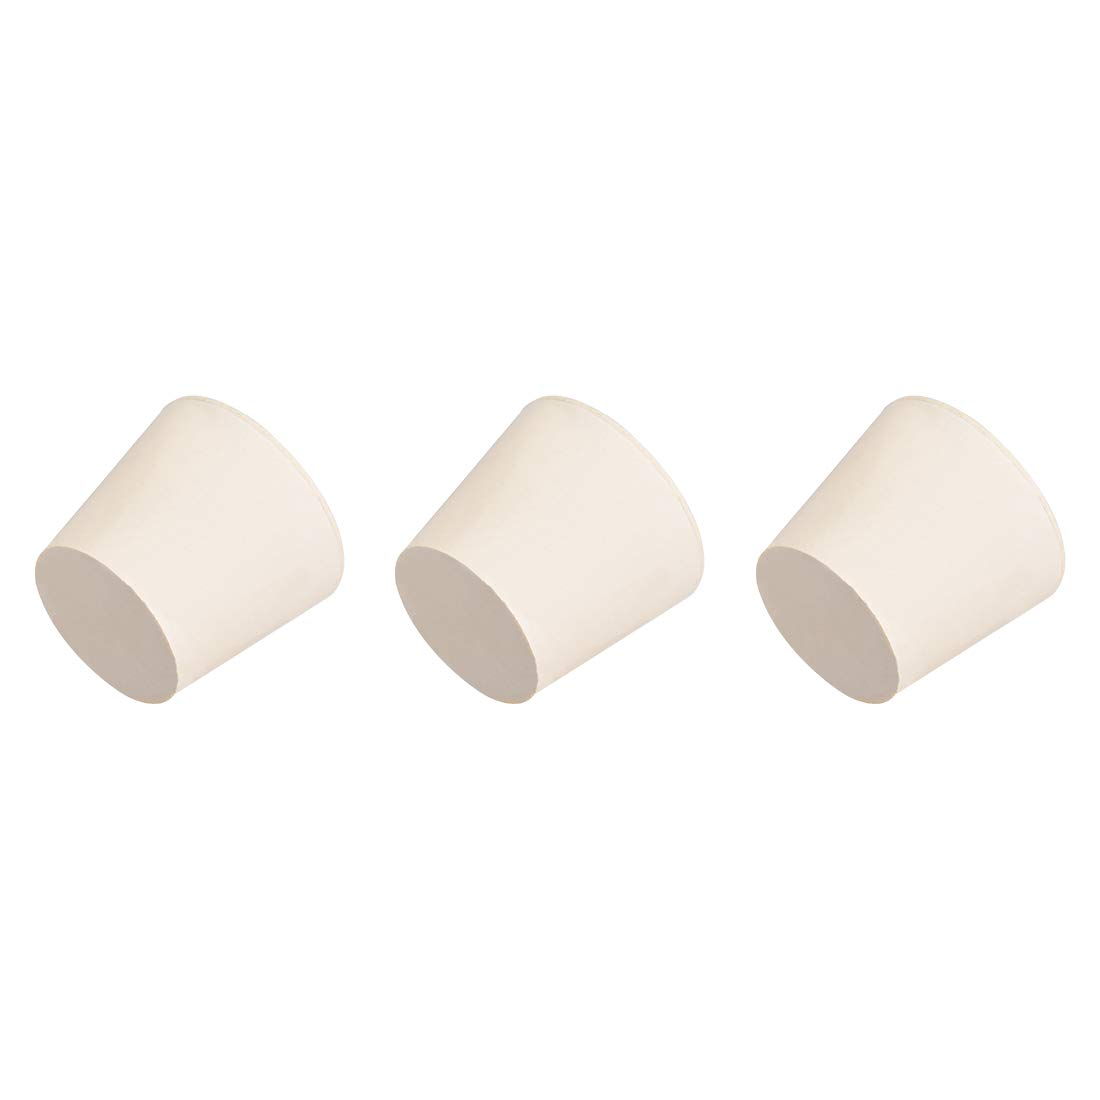 uxcell White Tapered Shaped Solid Rubber Stopper for Lab Tube Stopper Size 6 3Pcs